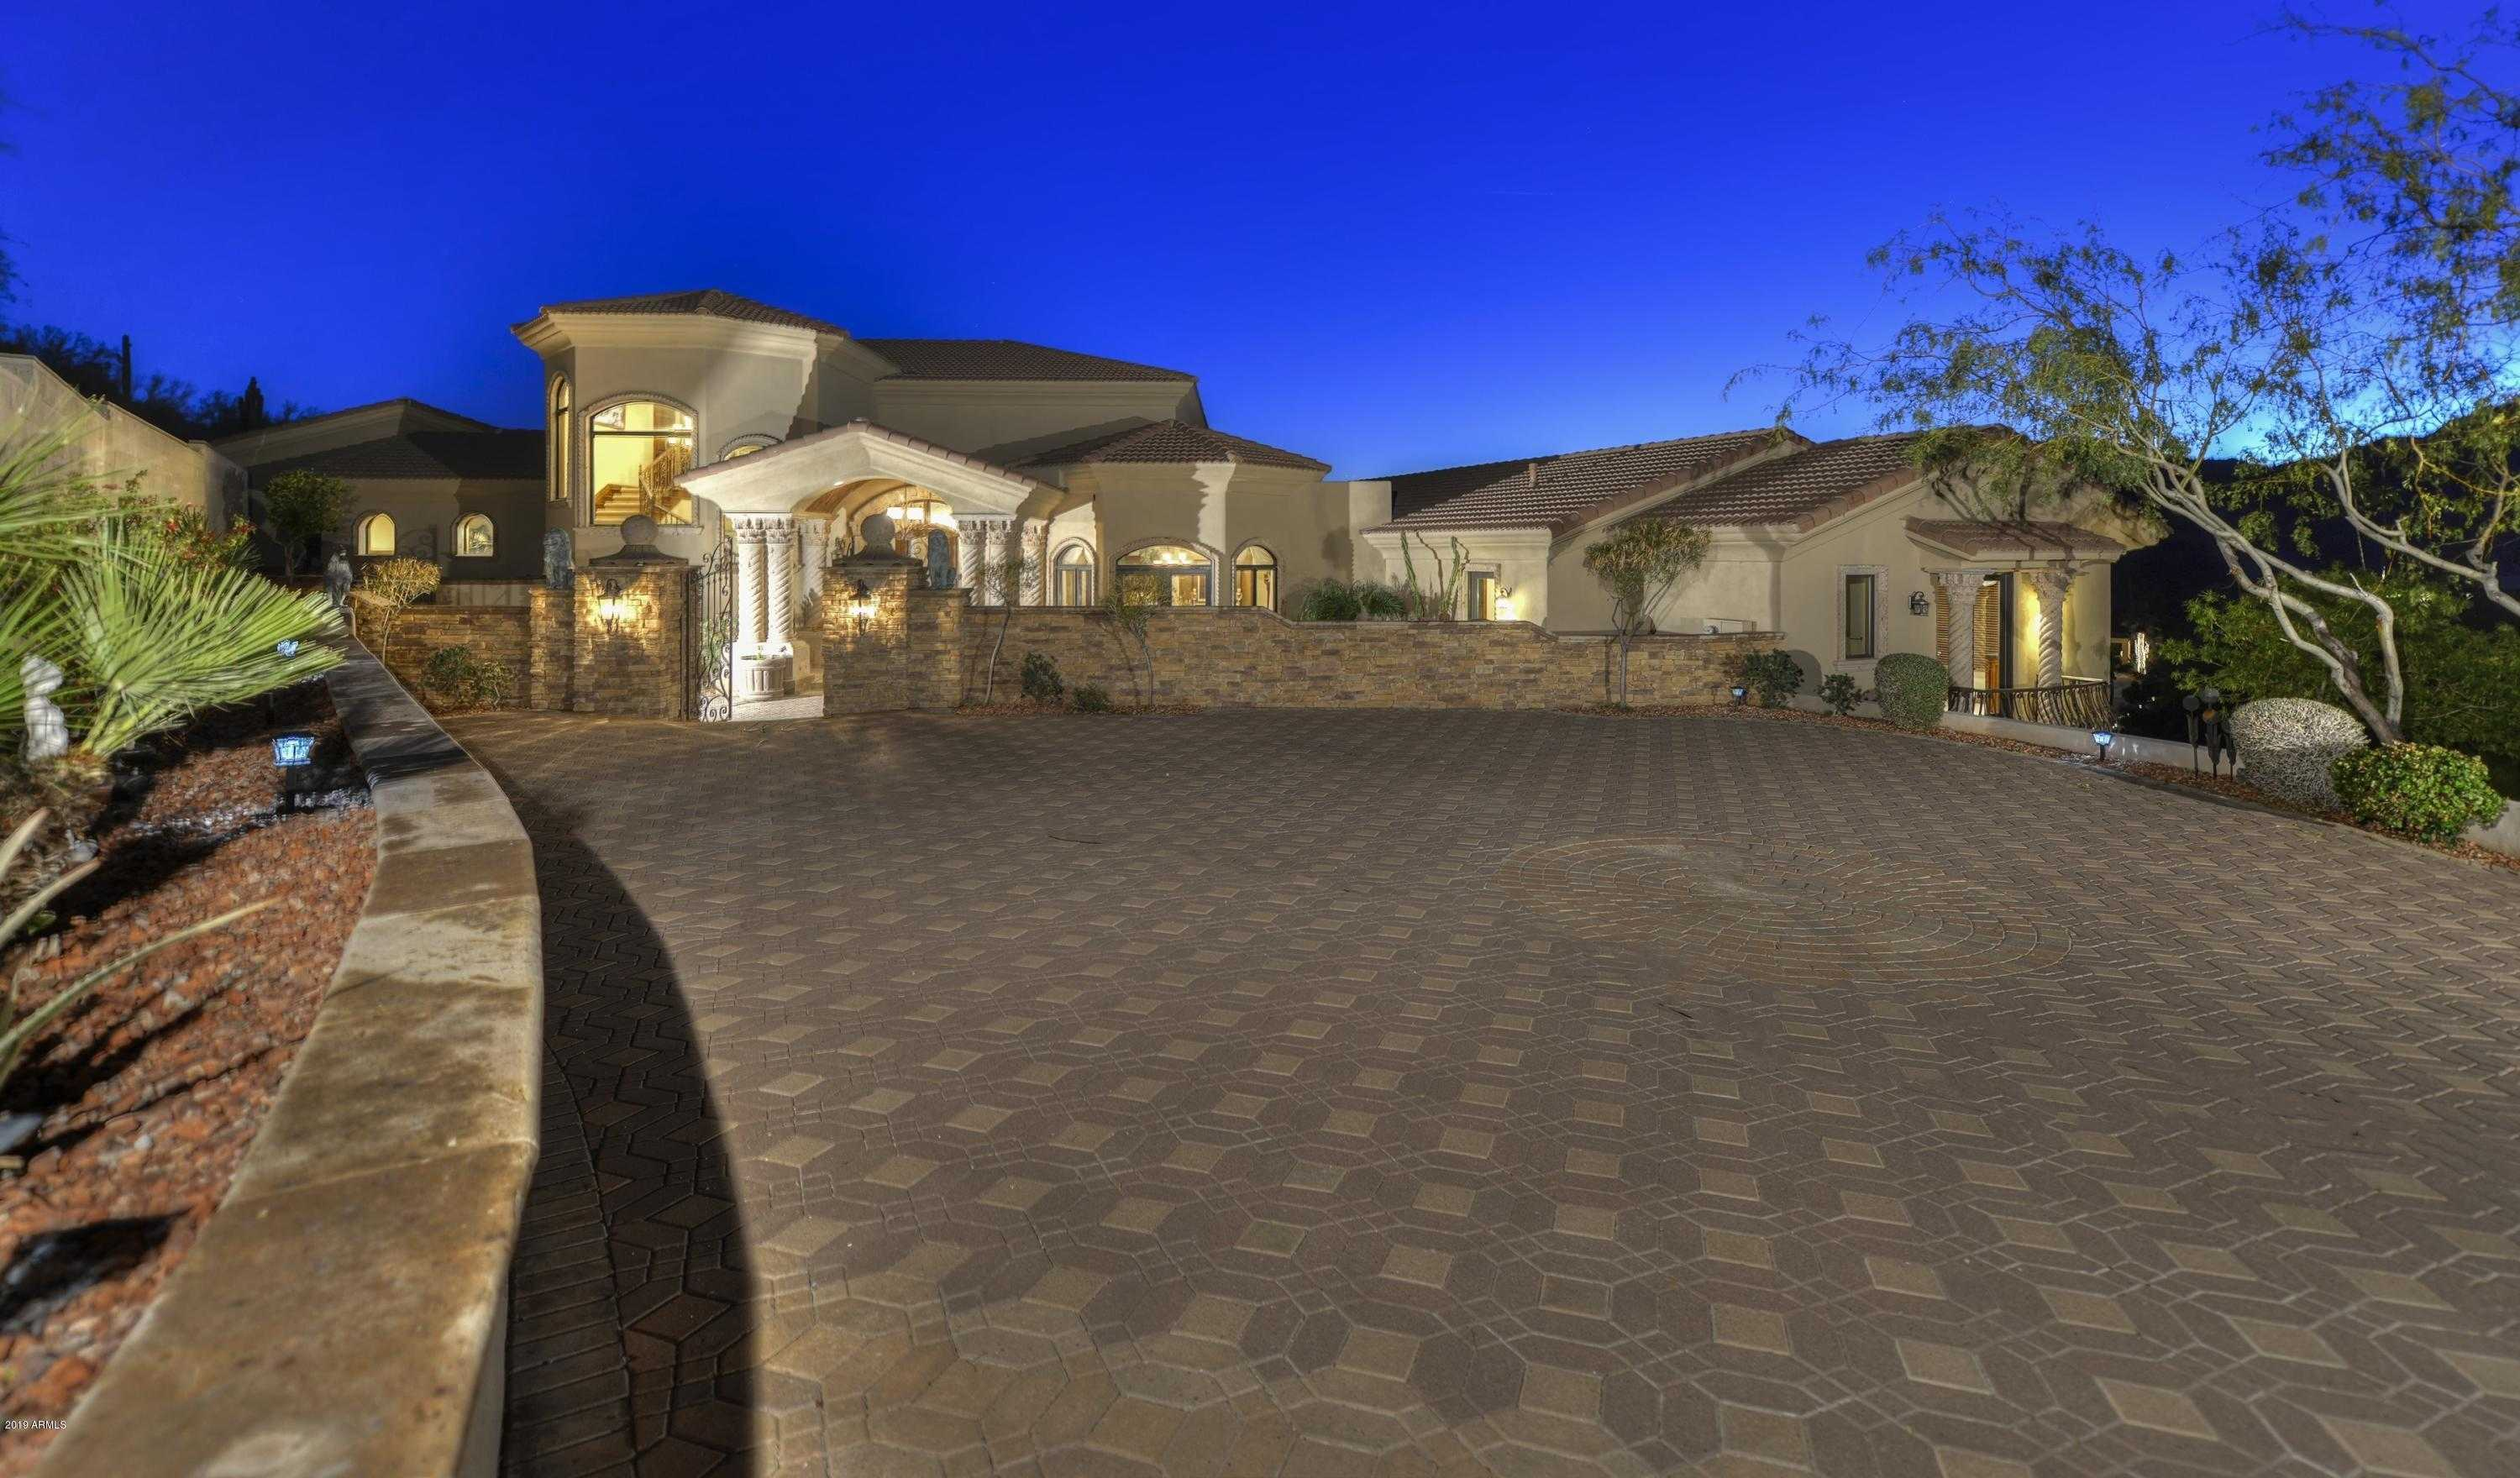 $4,600,000 - 5Br/7Ba - Home for Sale in Clearwater Hills 2 Private Roads, Paradise Valley